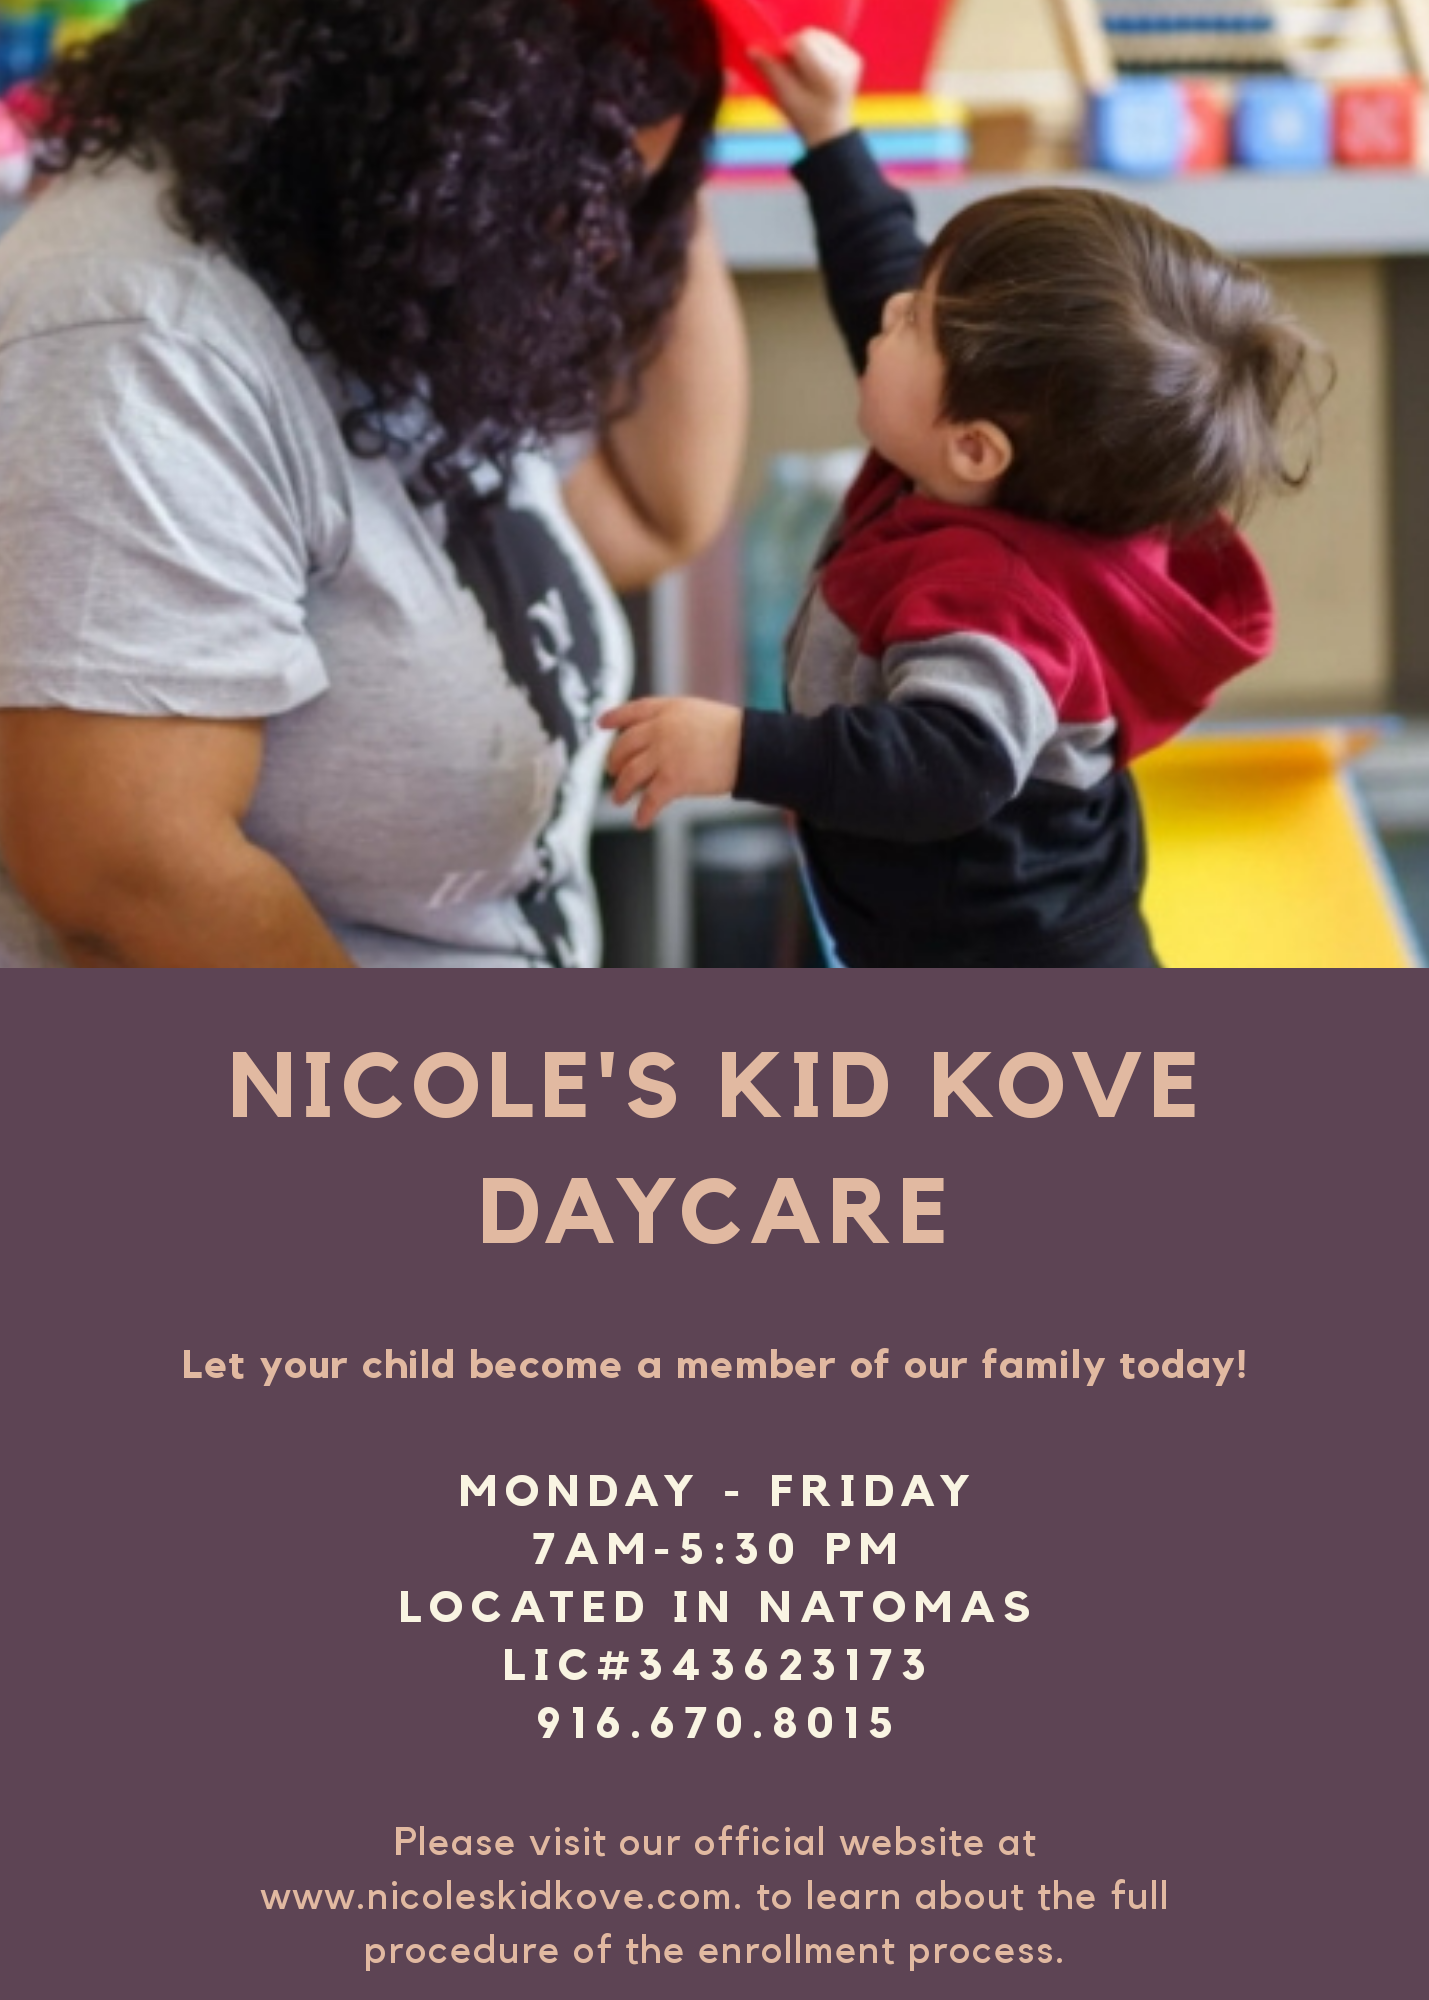 Nicole's Kid Kove Daycare